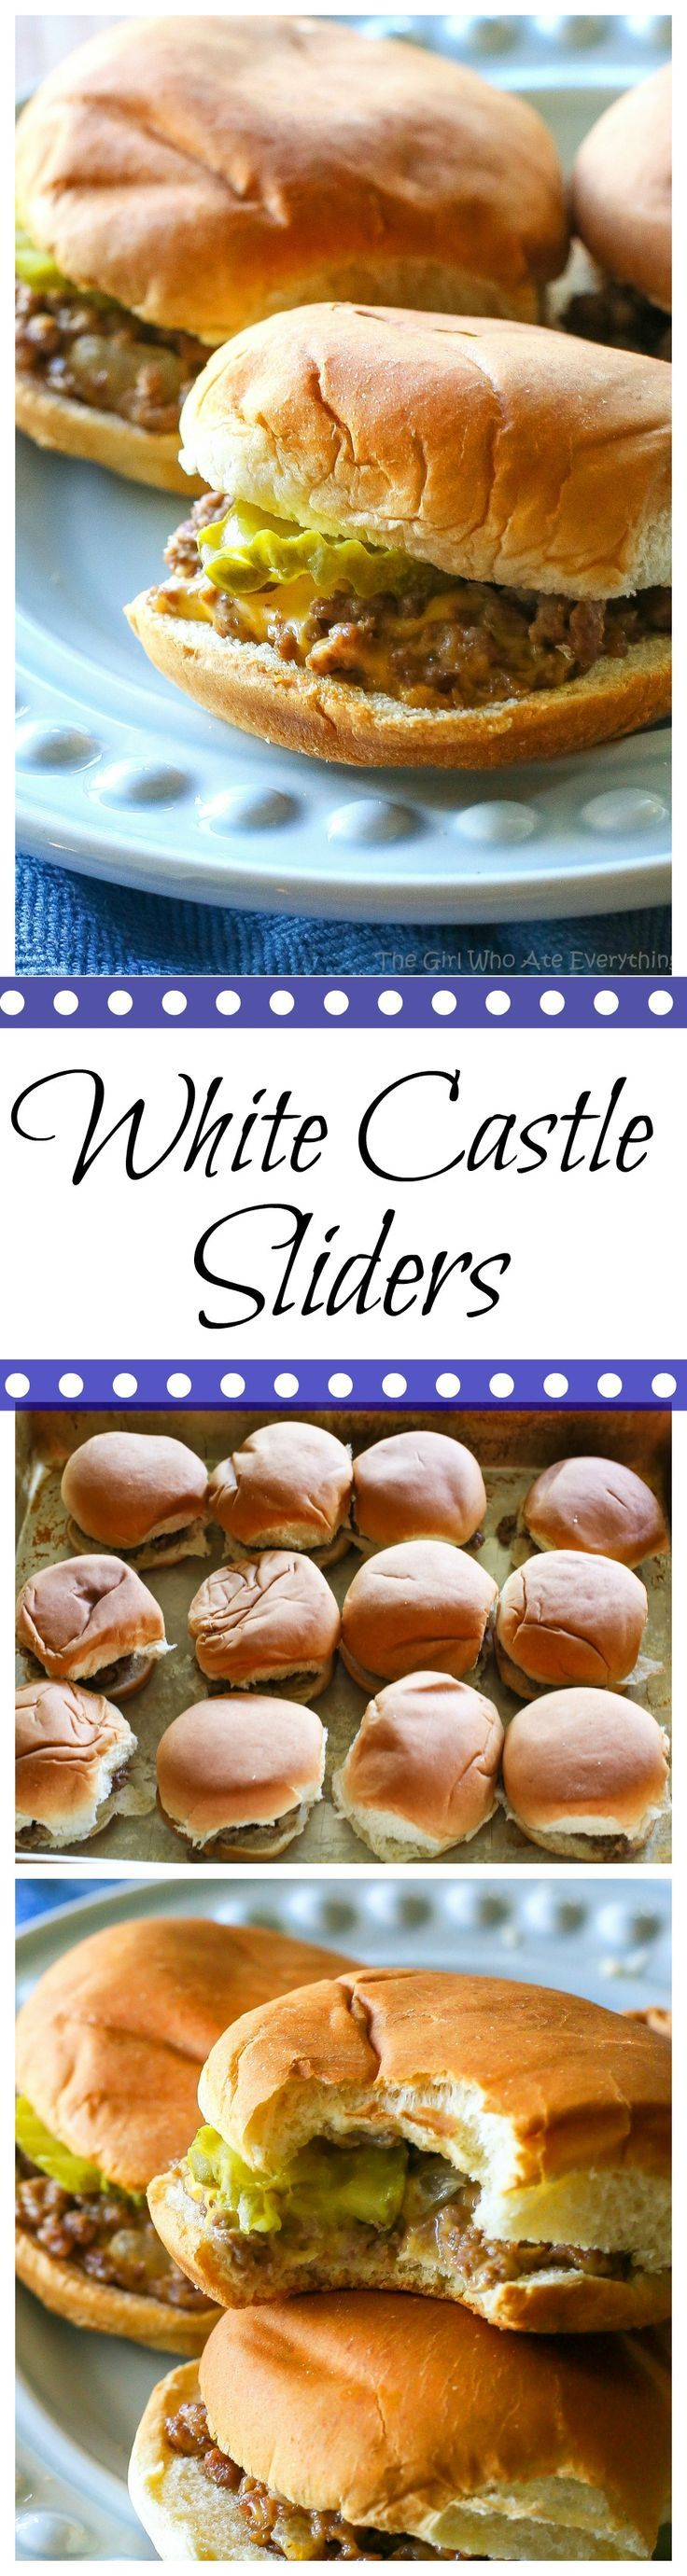 White Castle Sliders - a copycat version of the sandwich great for parties. I can't vouch that they're exactly the same but they're good! http://the-girl-who-ate-everything.com